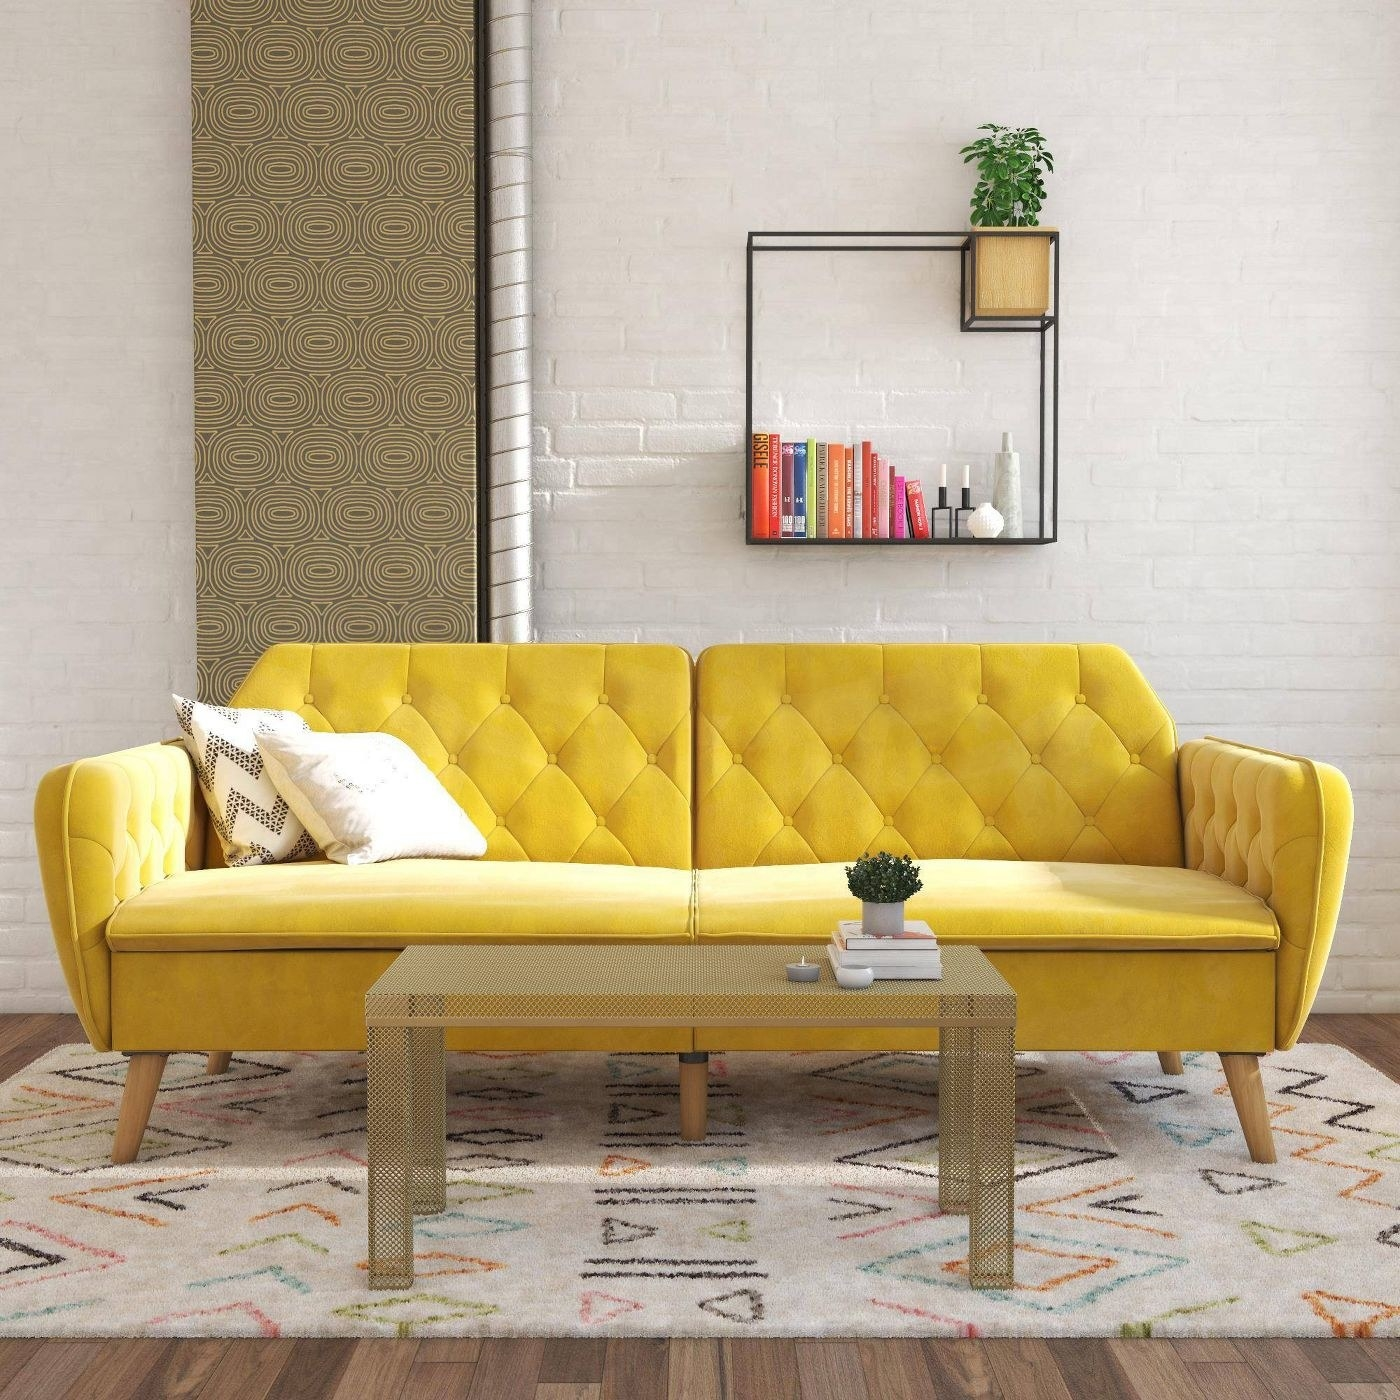 The sofa in yellow shown in a room with a rug and coffee table